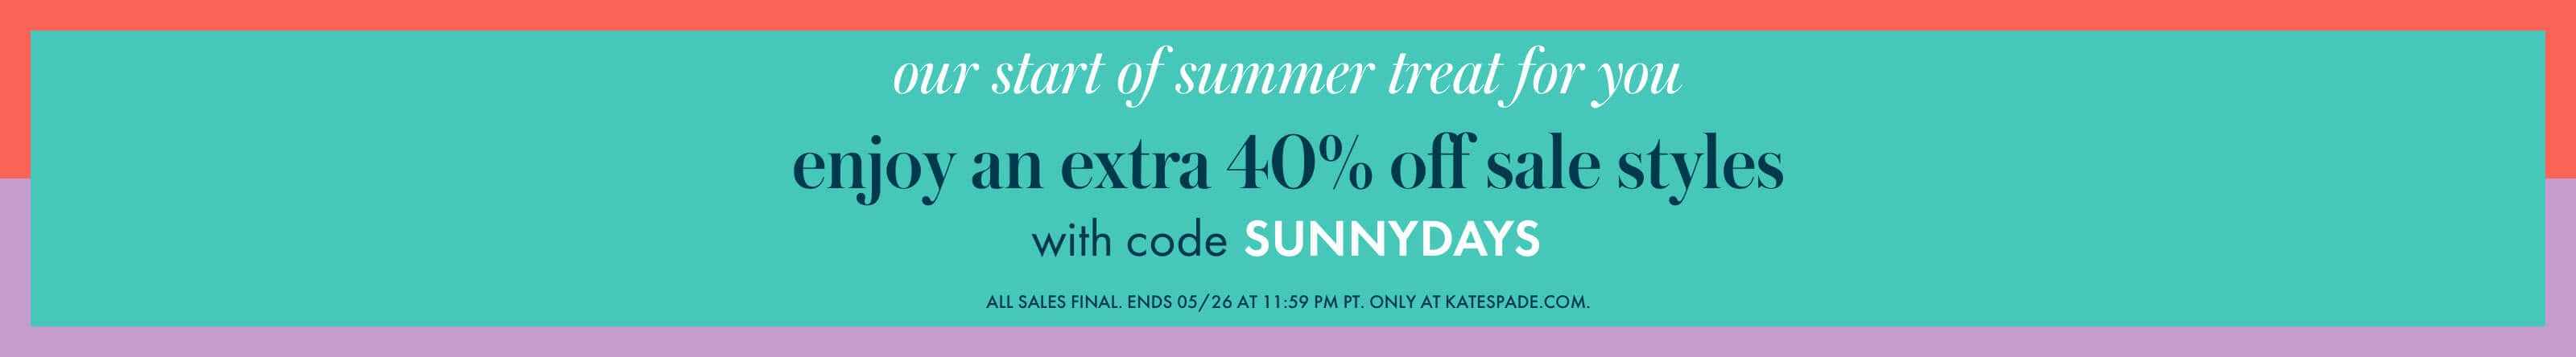 our start of summer treat for you. enjoy and extra 40% off sale styles with code SUNNYDAYS. 